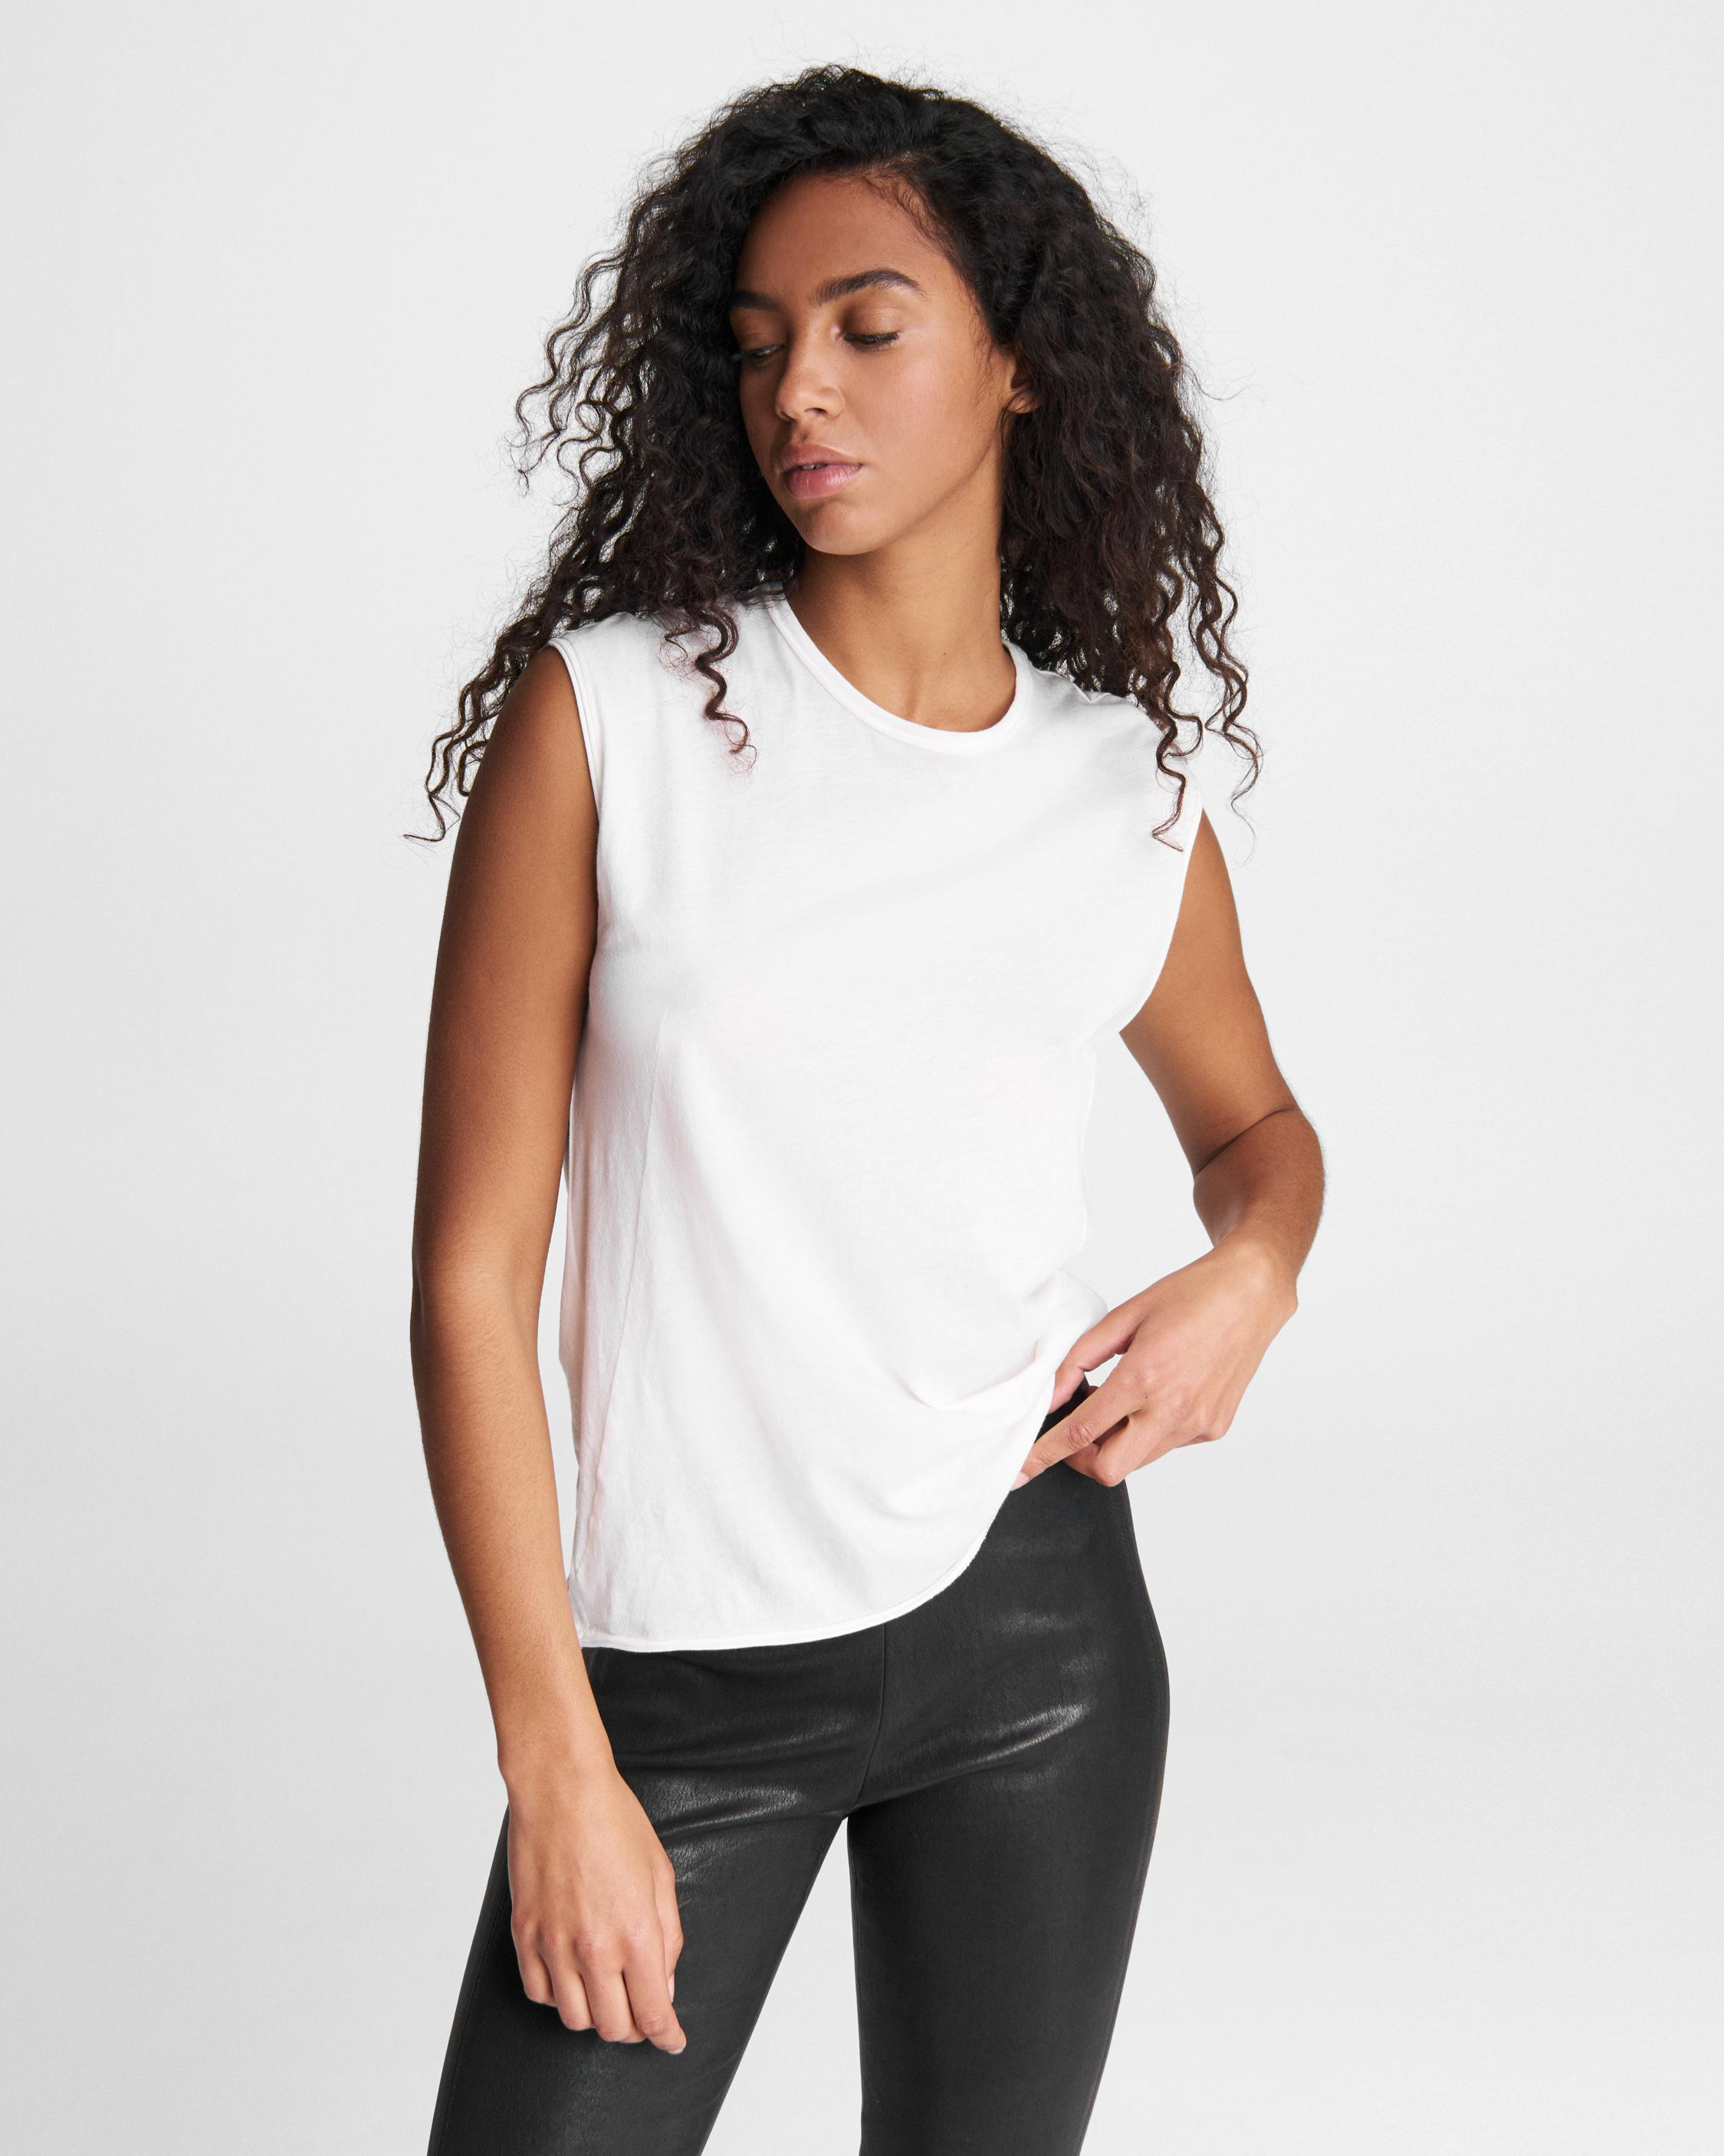 The gaia jersey muscle tank